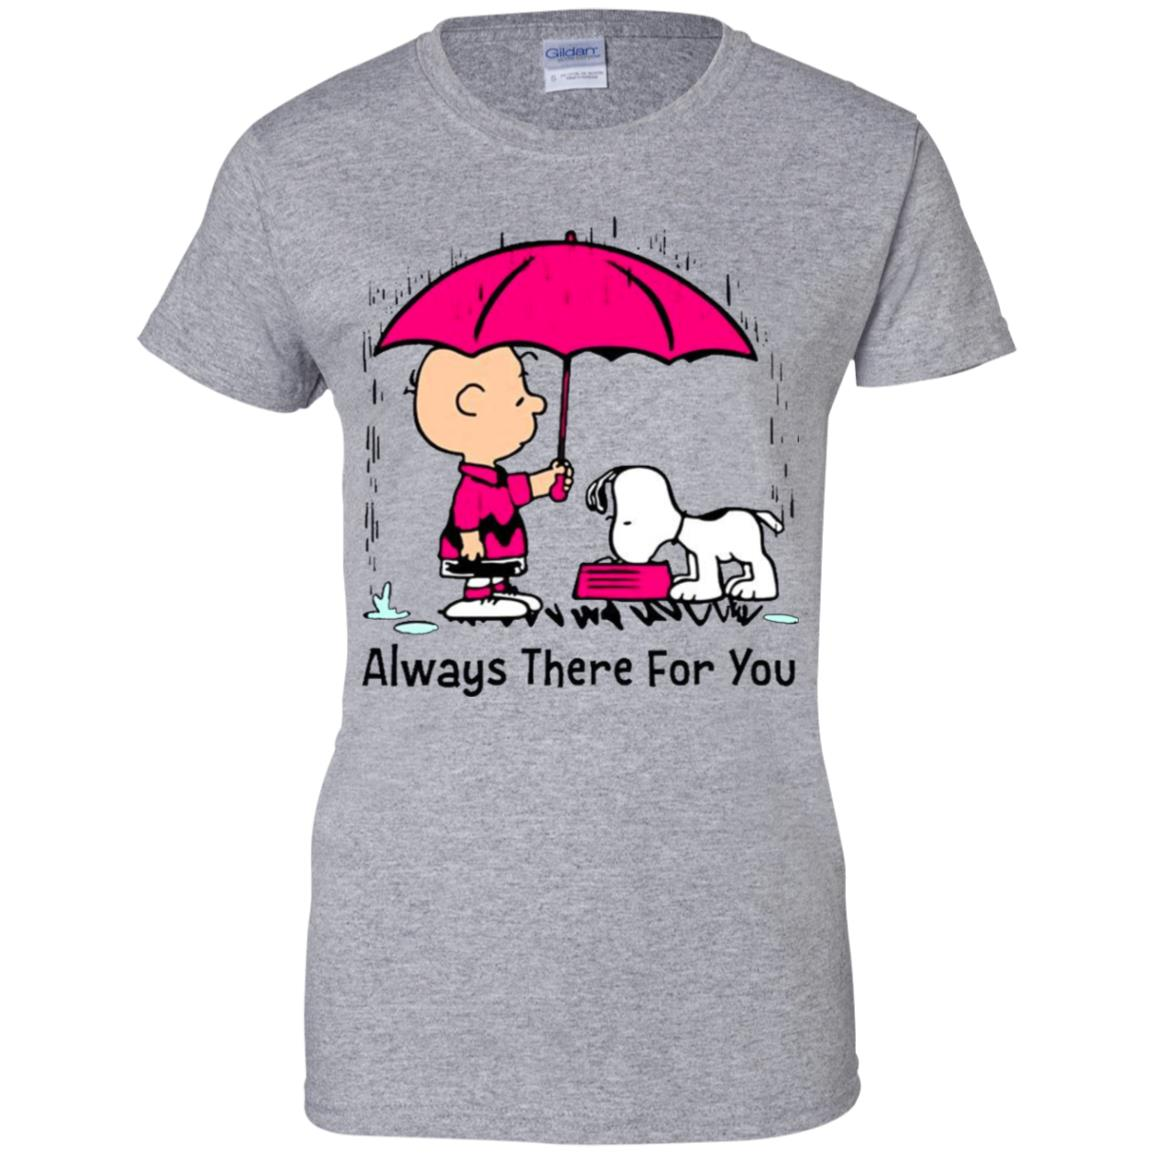 Snoopy and Charlie Brown always there for you